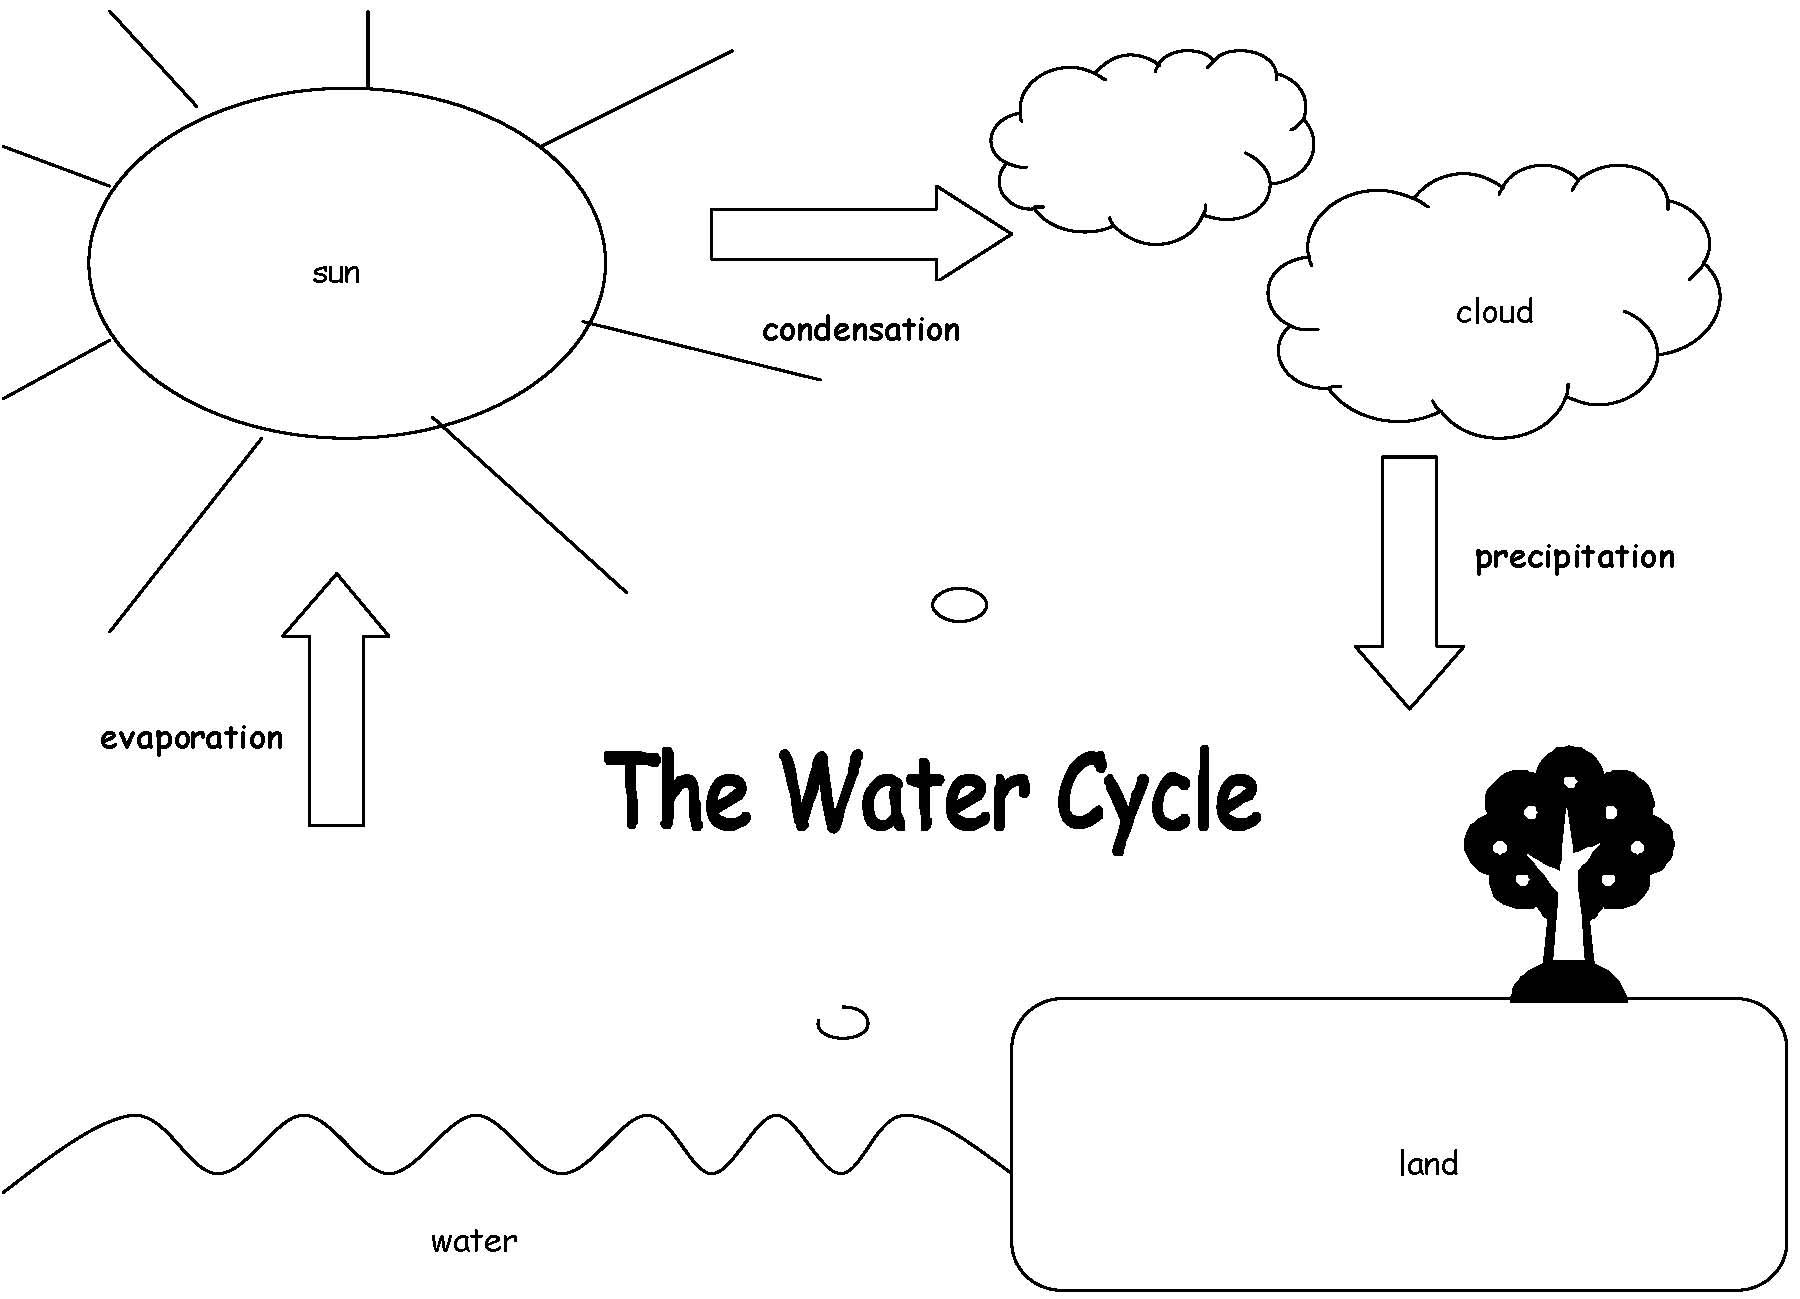 Coloring pages water - Water Cycle Coloring Pages The Coloring Pages Science Pinterest School Summer School And Graphic Organizers